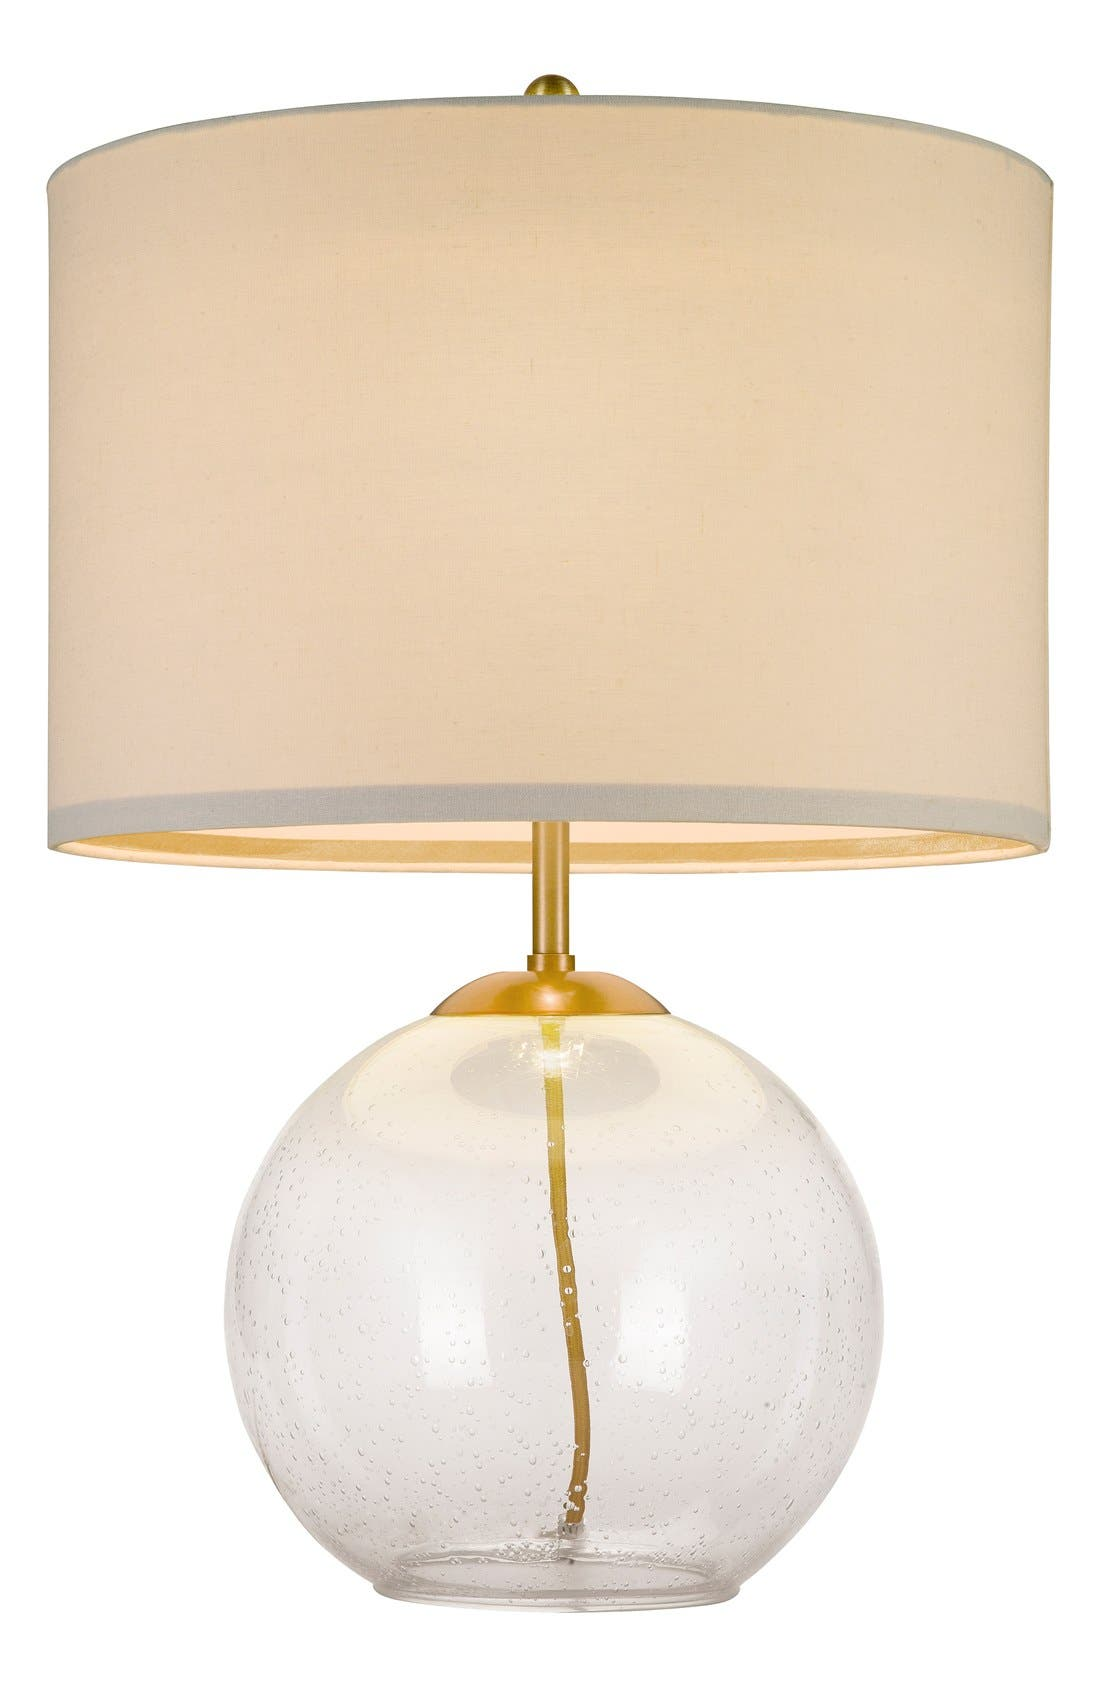 Seeded Glass Table Lamp,                             Main thumbnail 1, color,                             650